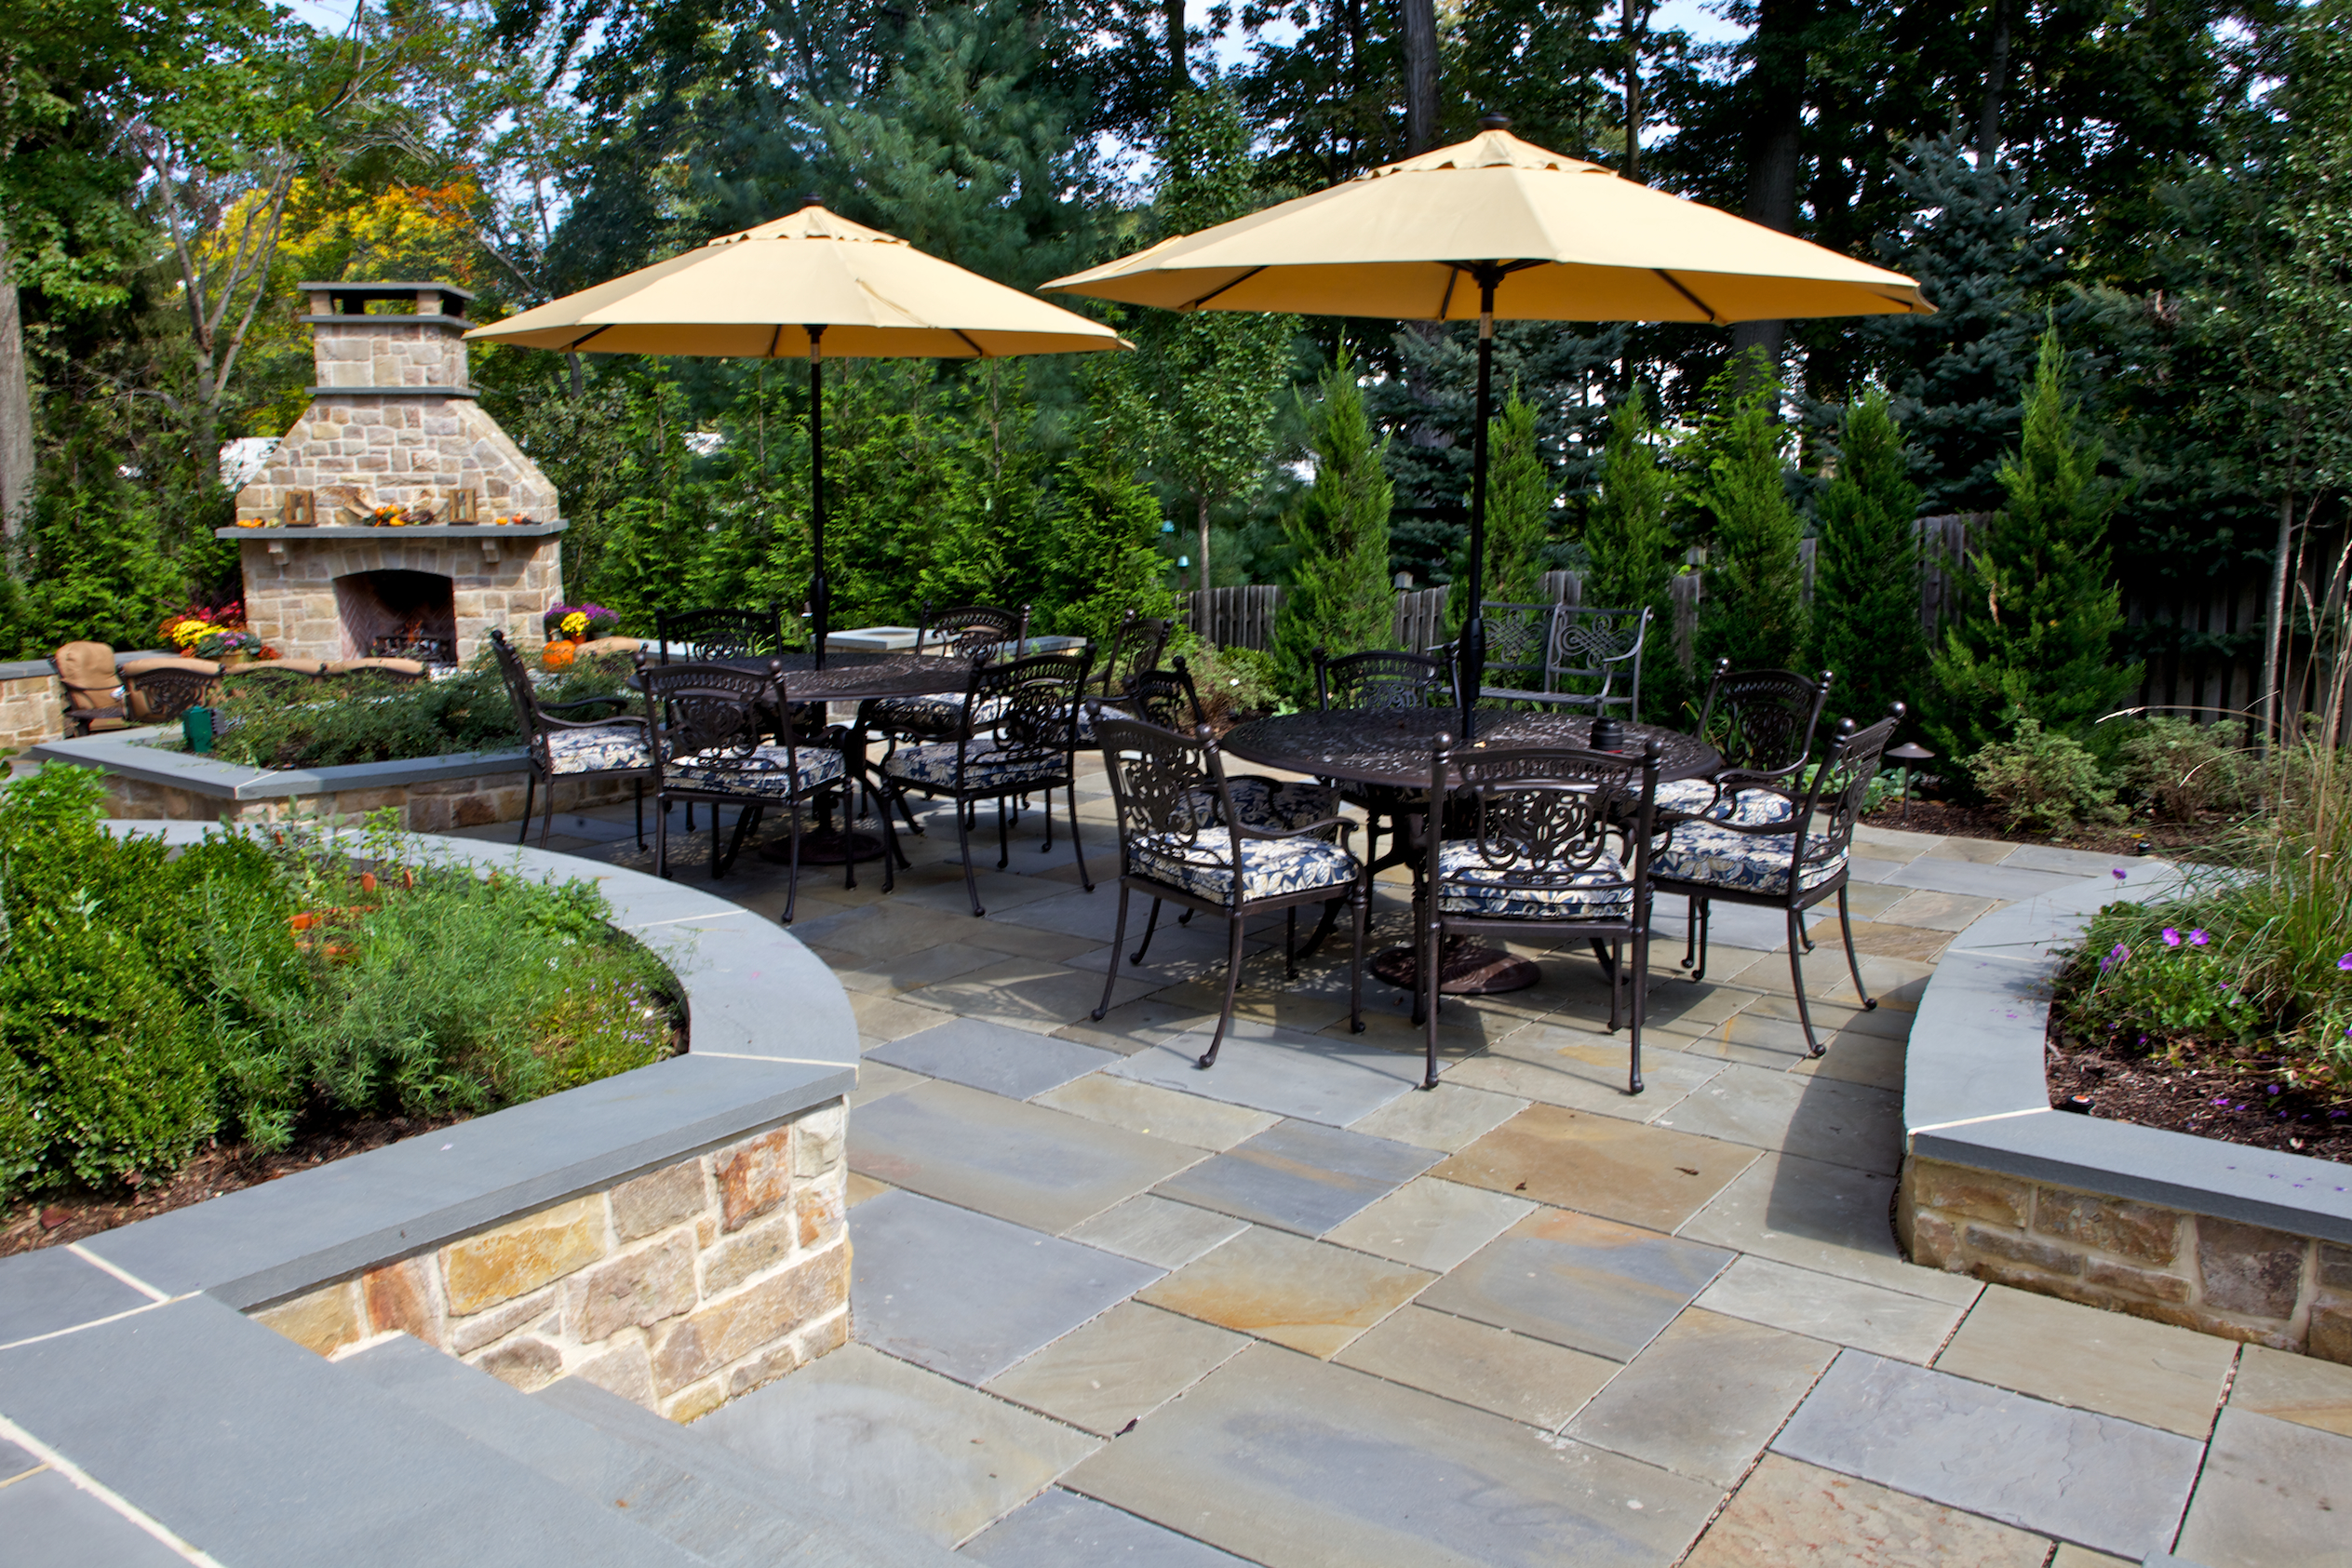 Terrific paver outdoor patio ideas with patio furniture eva furniture for Patio furniture designs plans